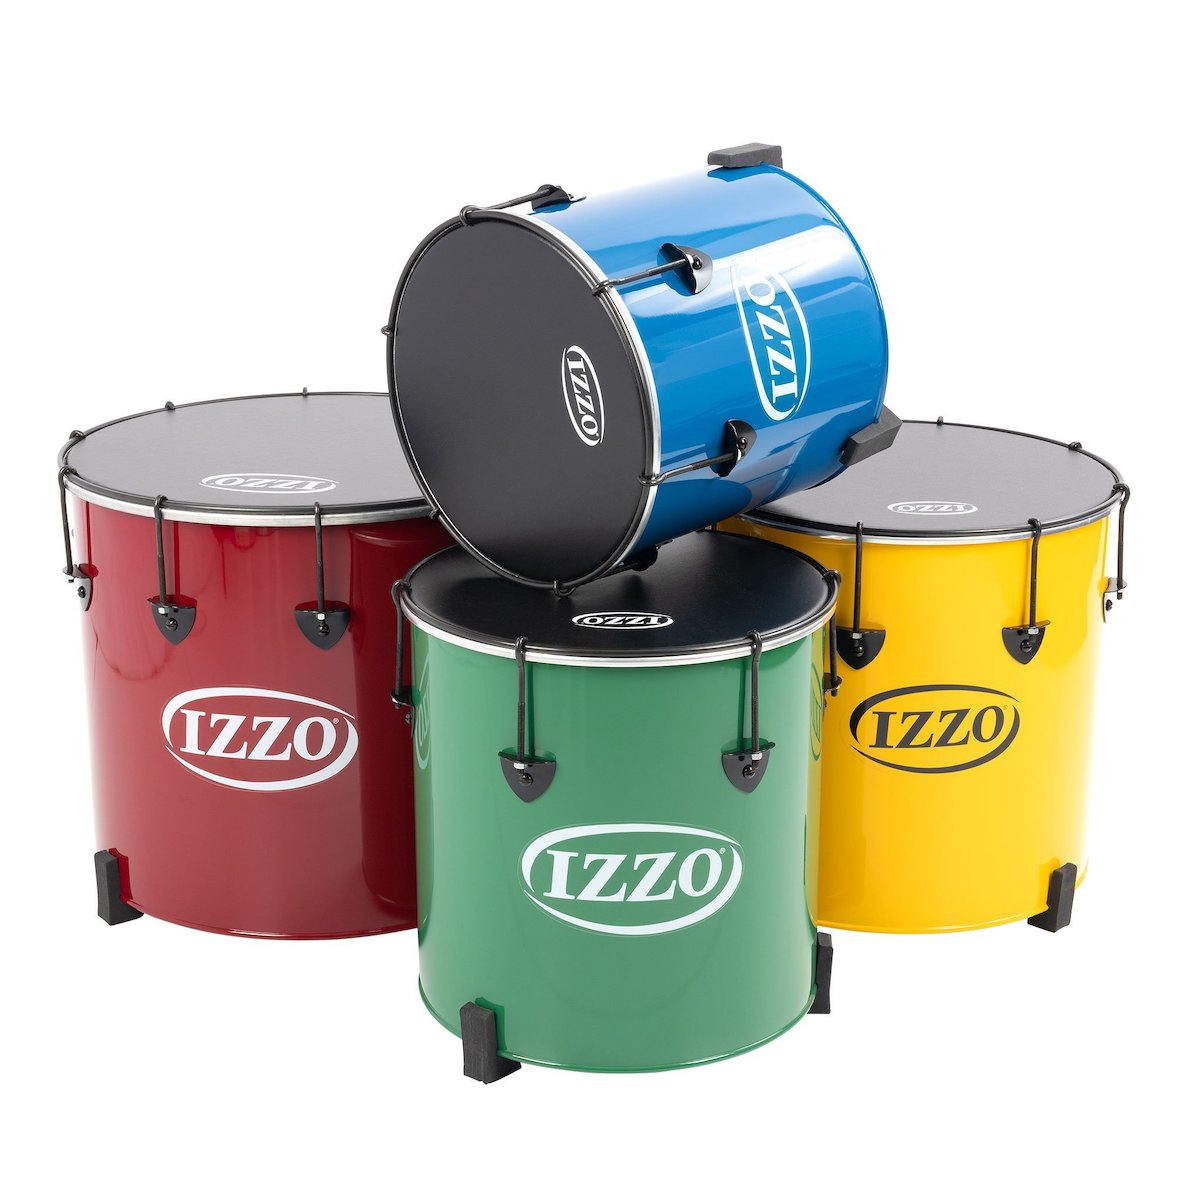 "Izzo Castle Surdos: Set of 4 nesting samba drums - 12"", 14"", 16"", 18"""